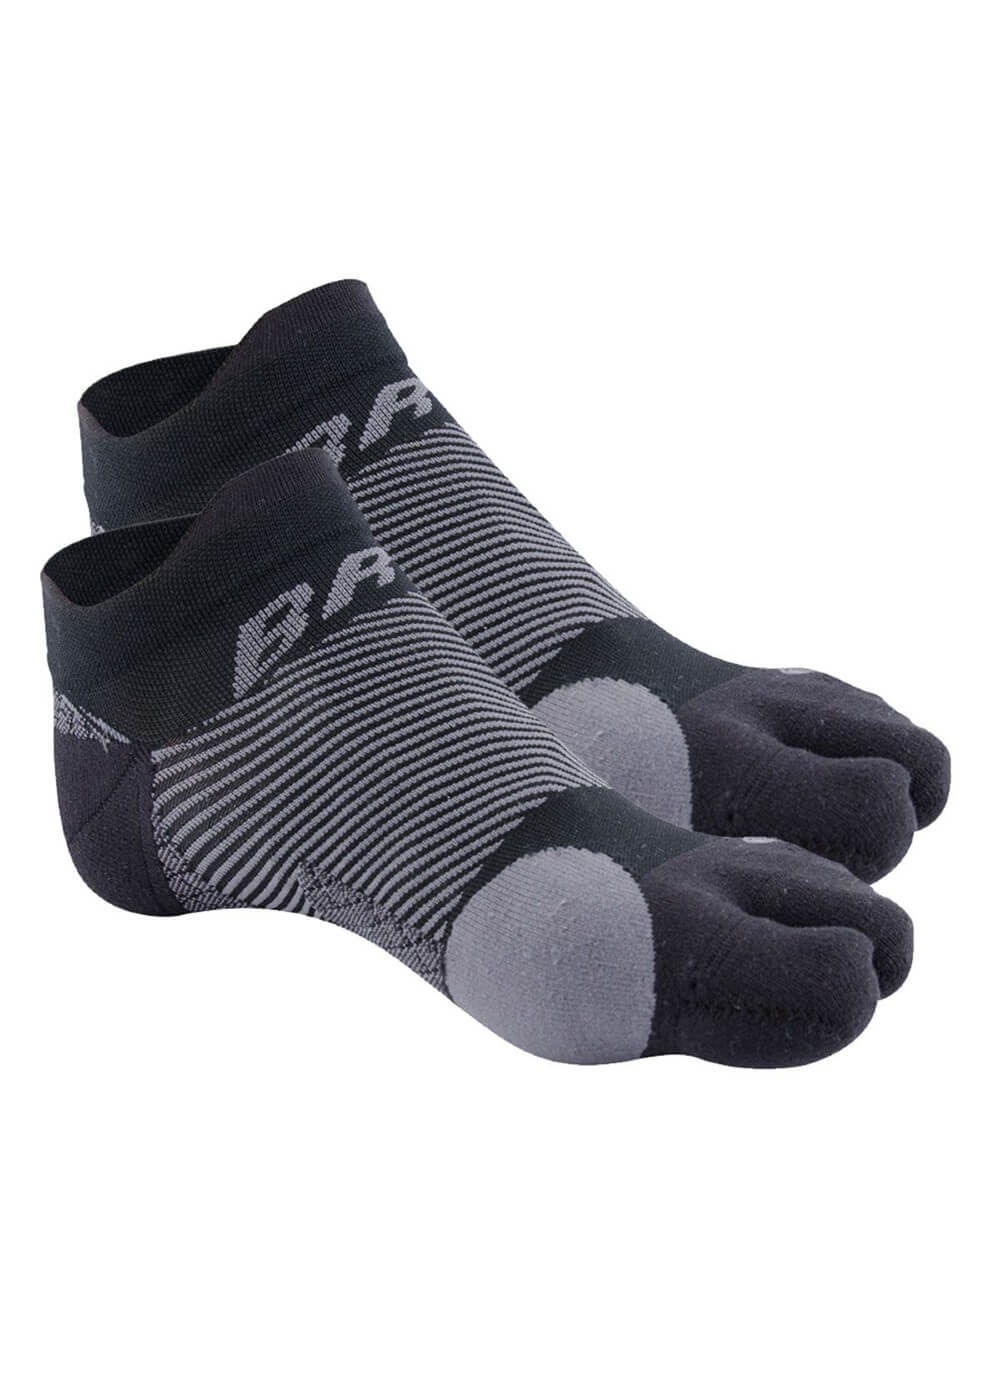 os1st-orthosleeve-br4-bunion-relief-socks